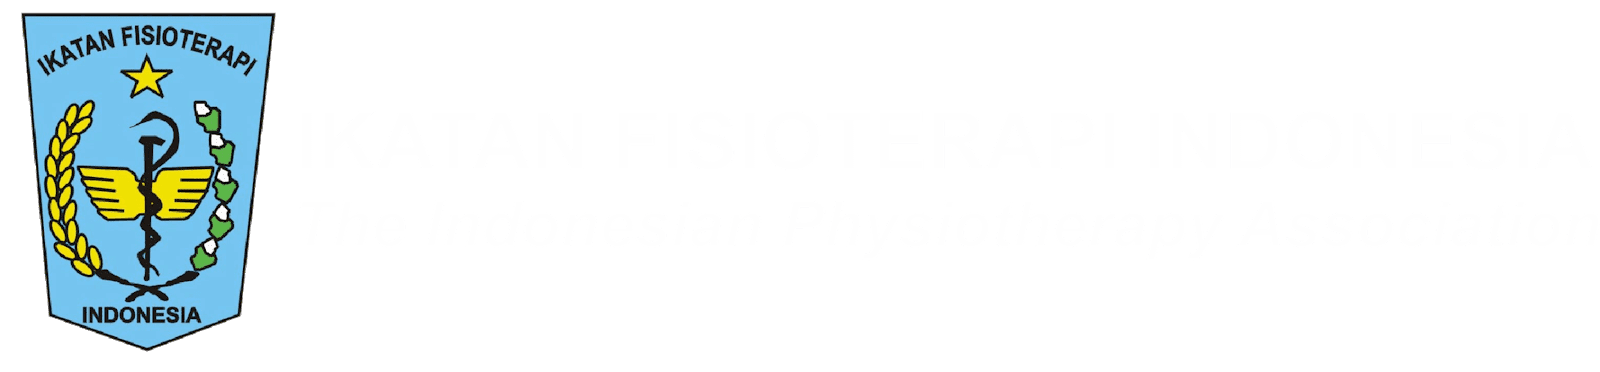 Ikatan Fisioterapi Indonesia | Indonesian Physiotherapy Association